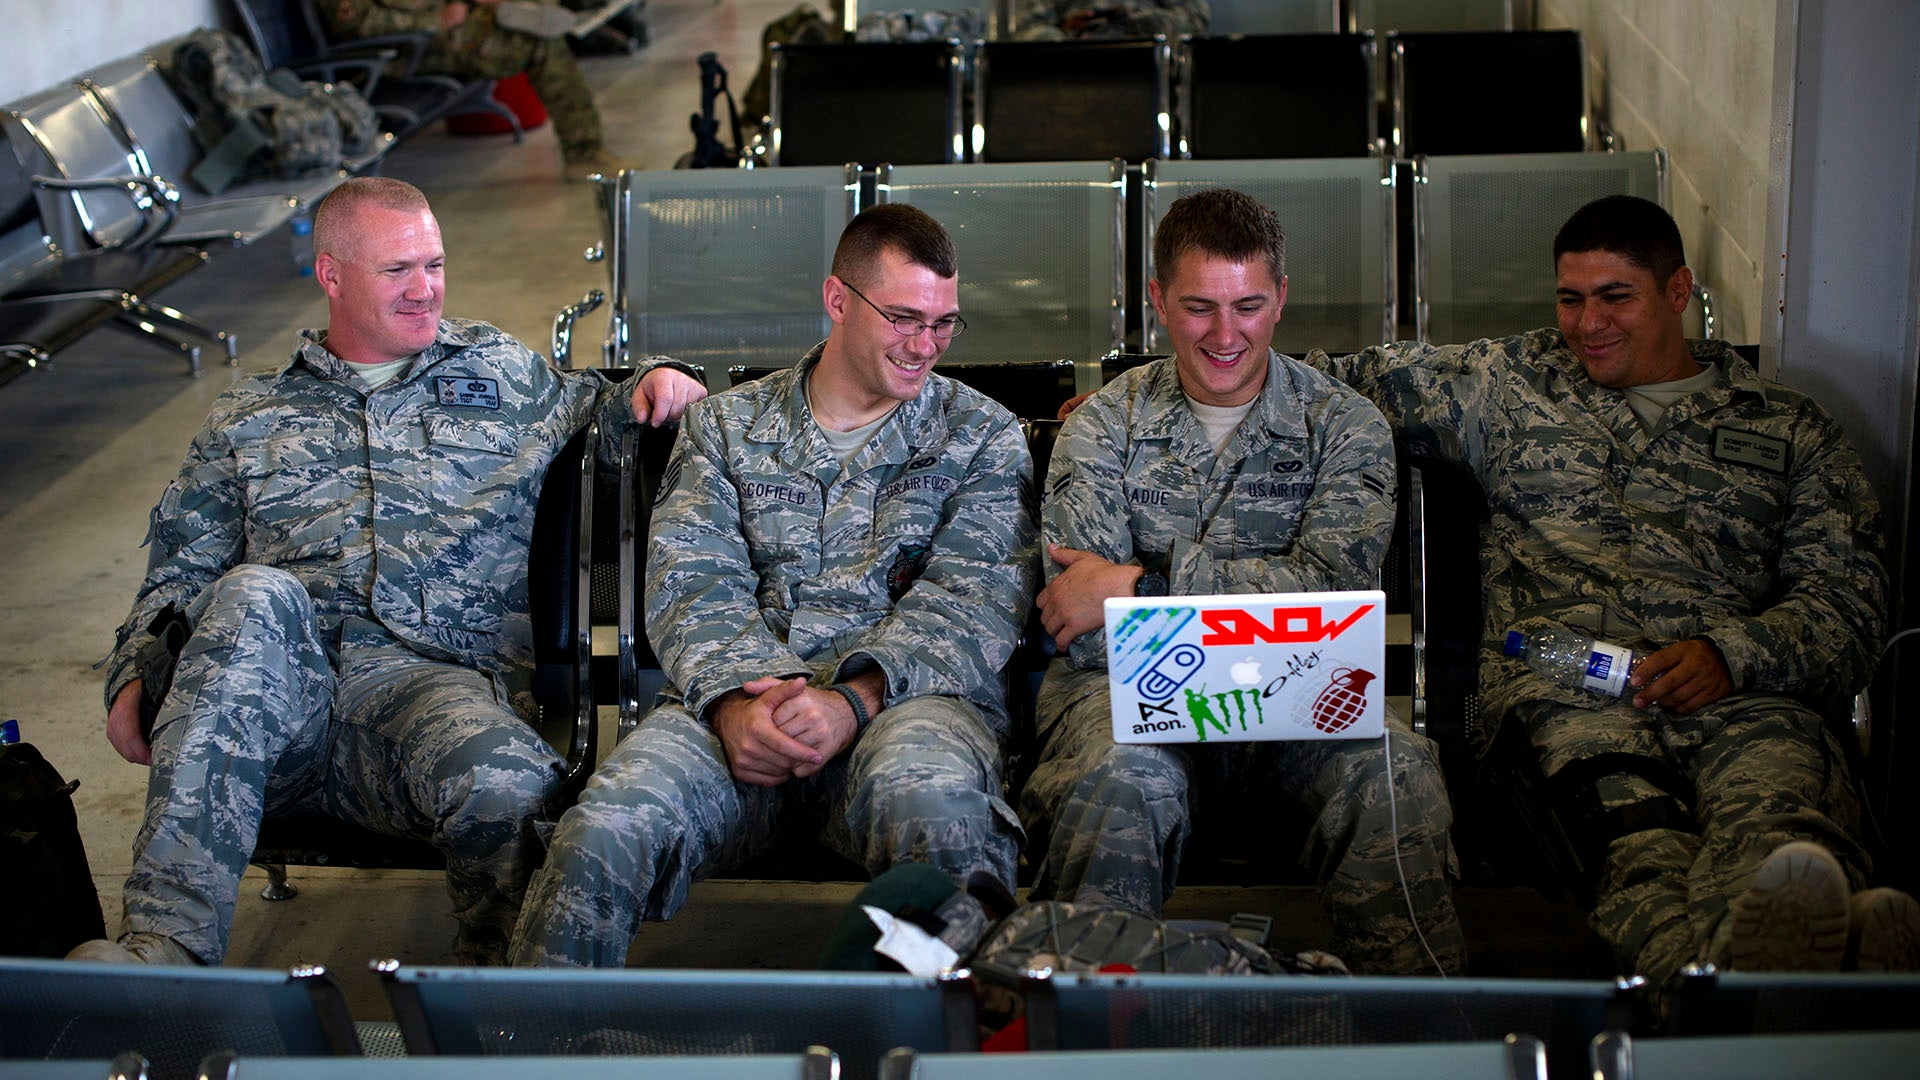 What movies or shows did you watch on deployment?